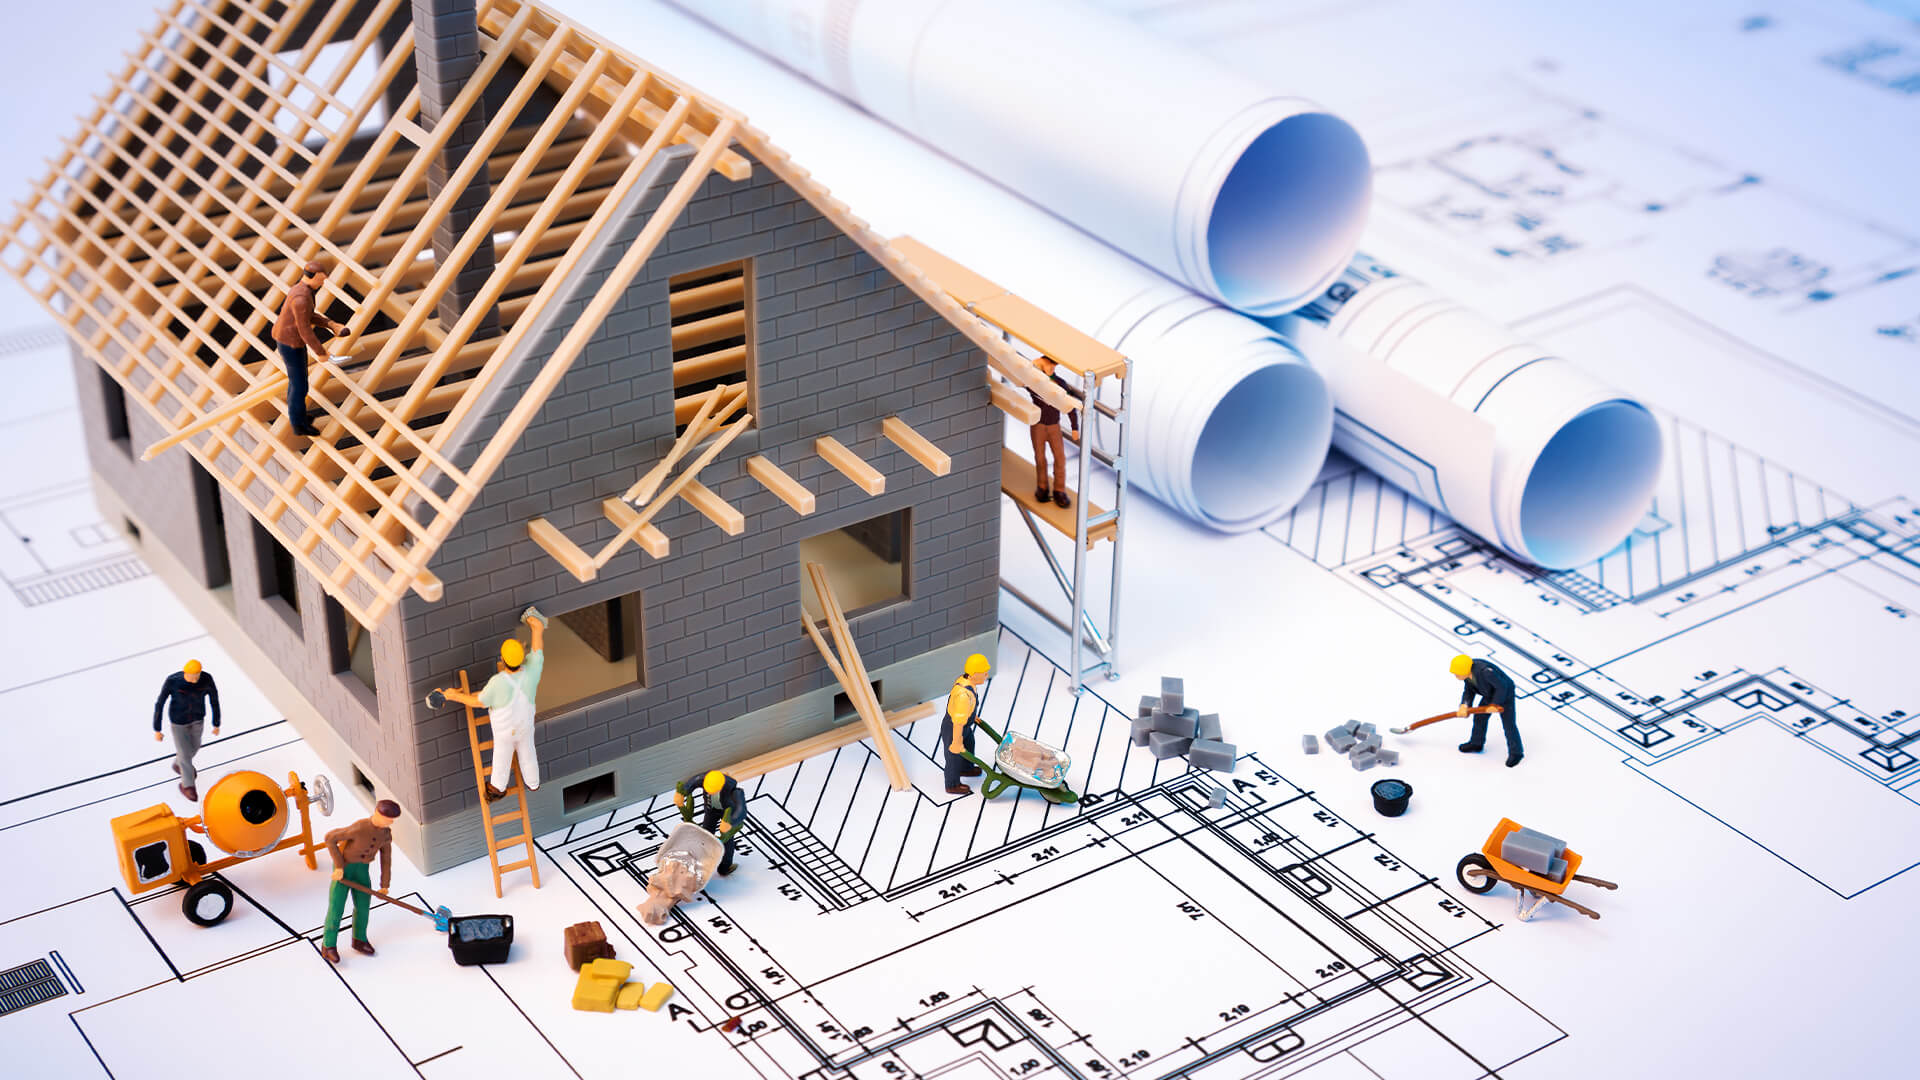 A-guide-to-construction-safety-for-homebuilders